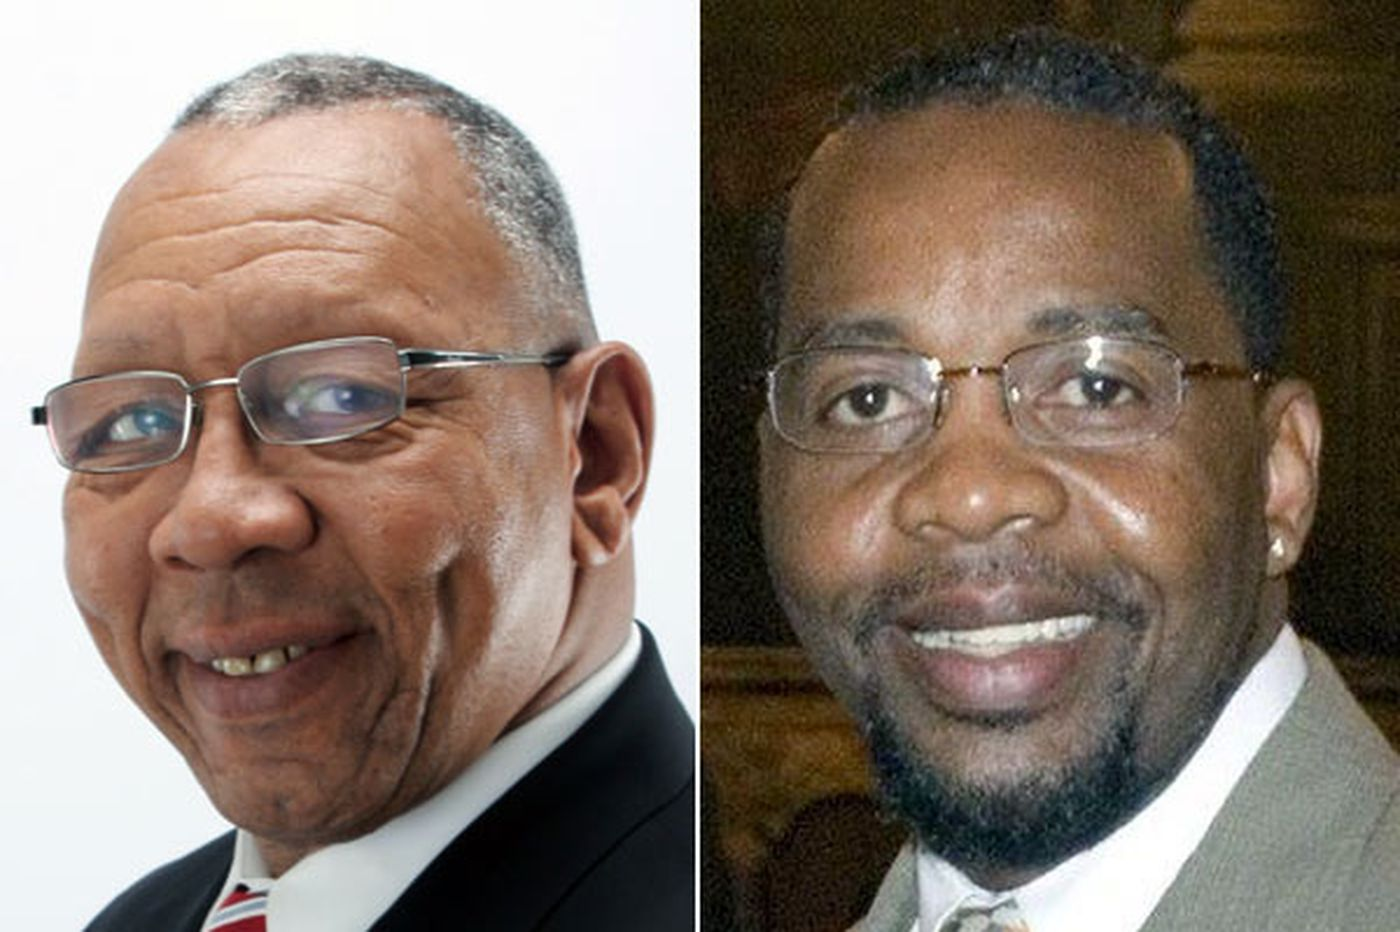 Race for Chester mayor reflects Democrats' division